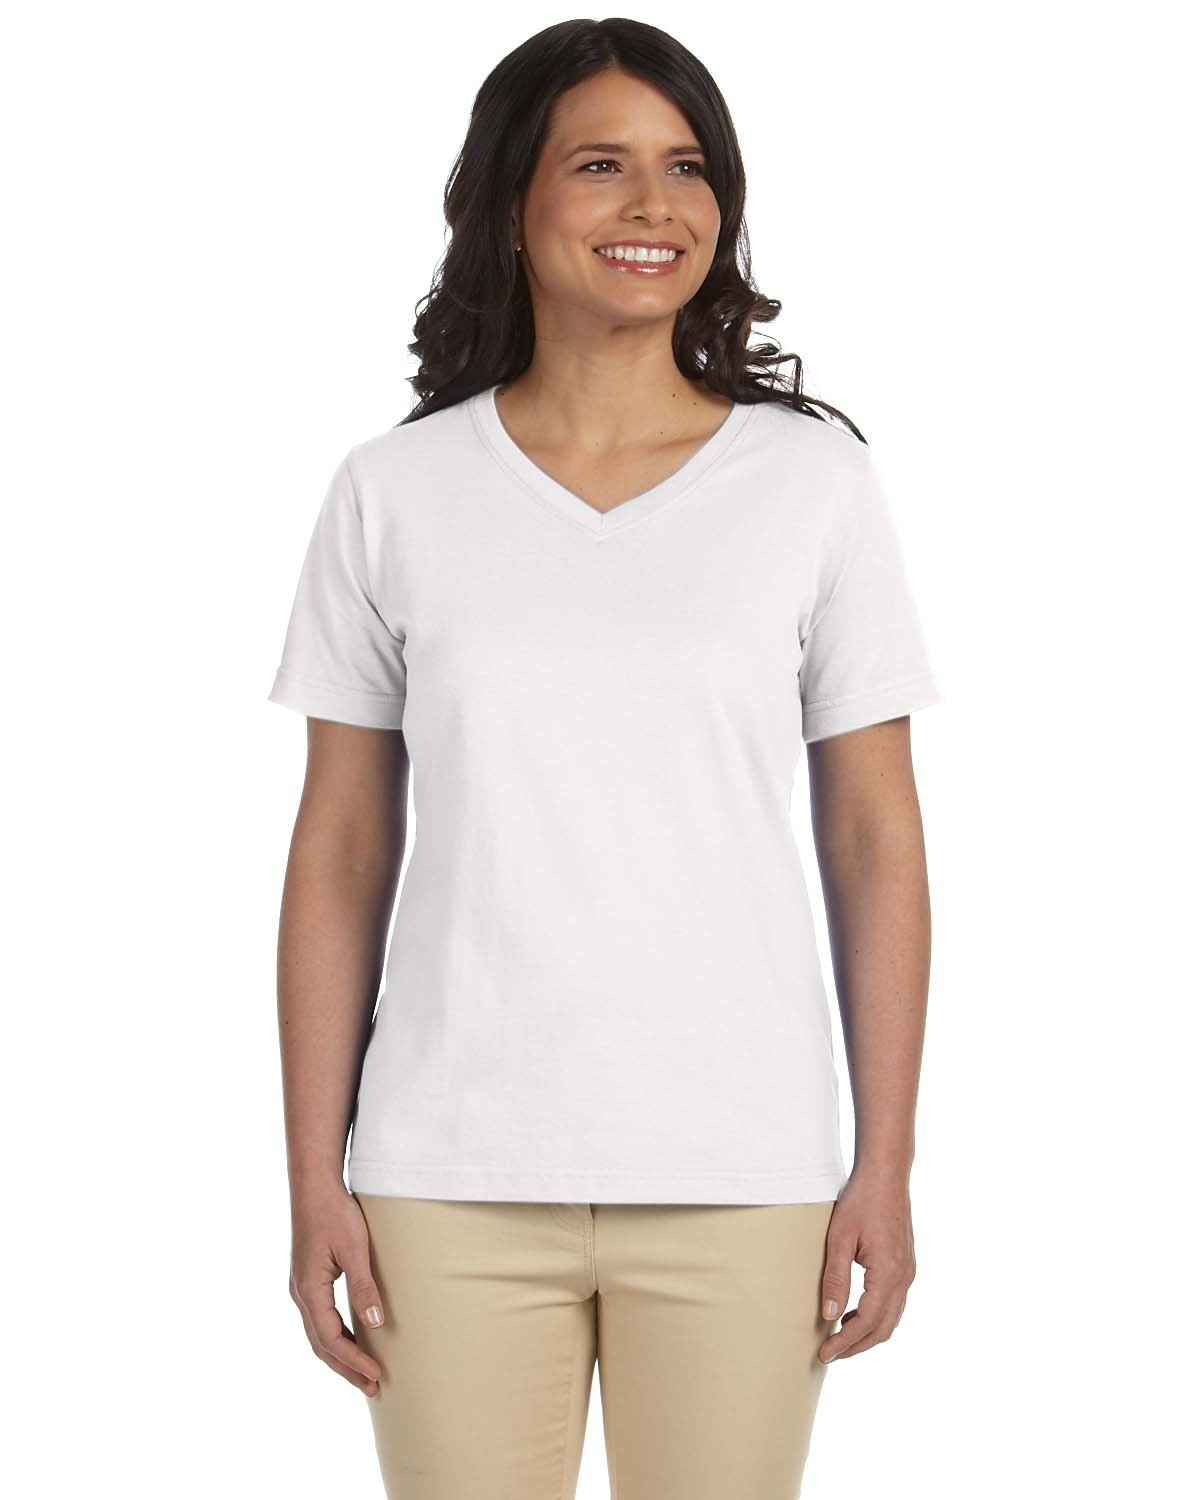 LAT Ladies' Premium Jersey V-Neck T-Shirt WHITE